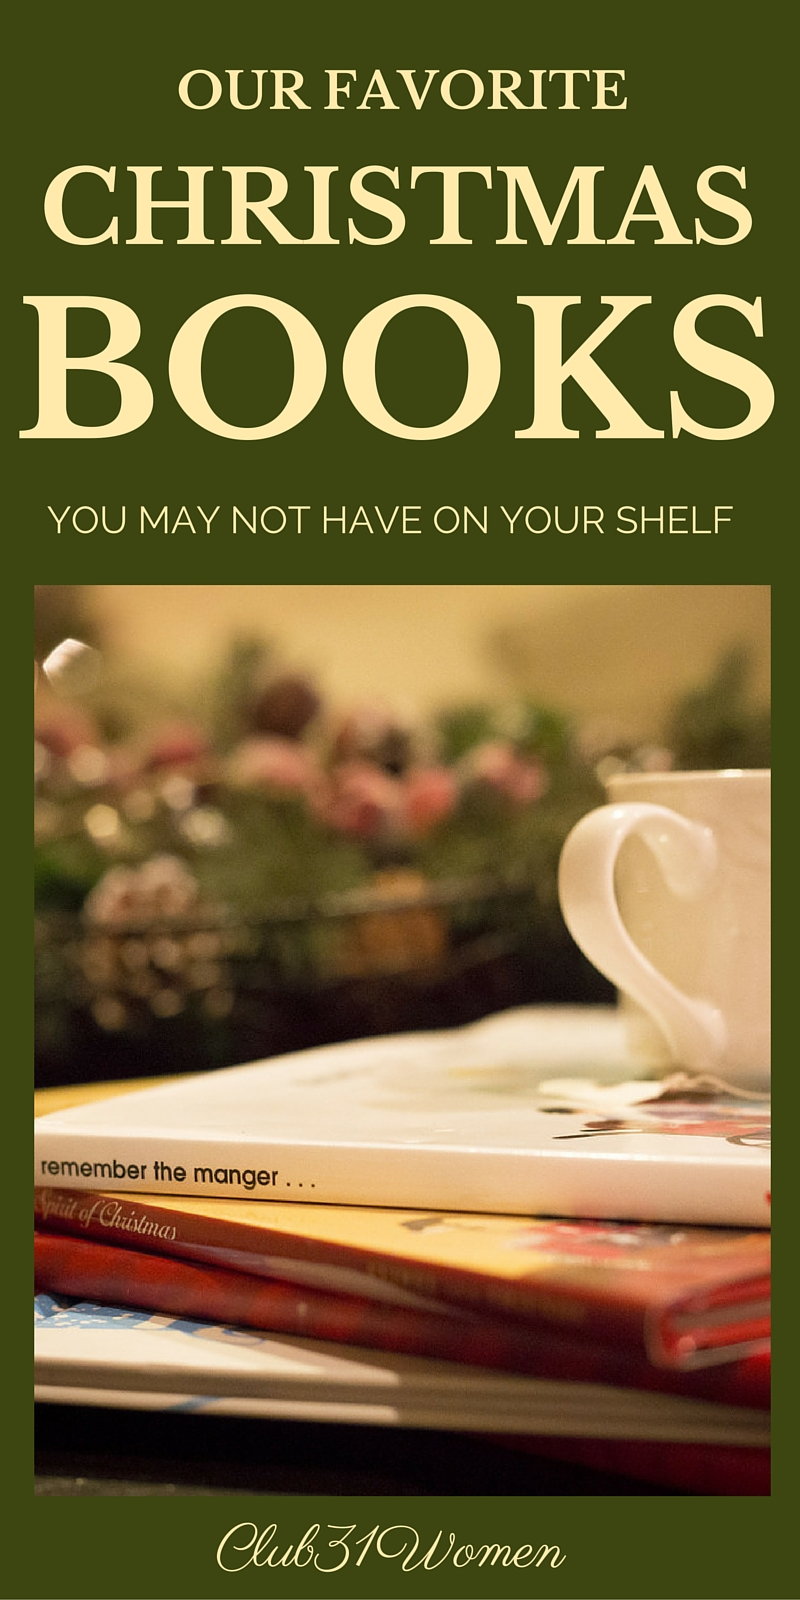 Our Favorite Christmas Books You May Not Have On Your Shelf